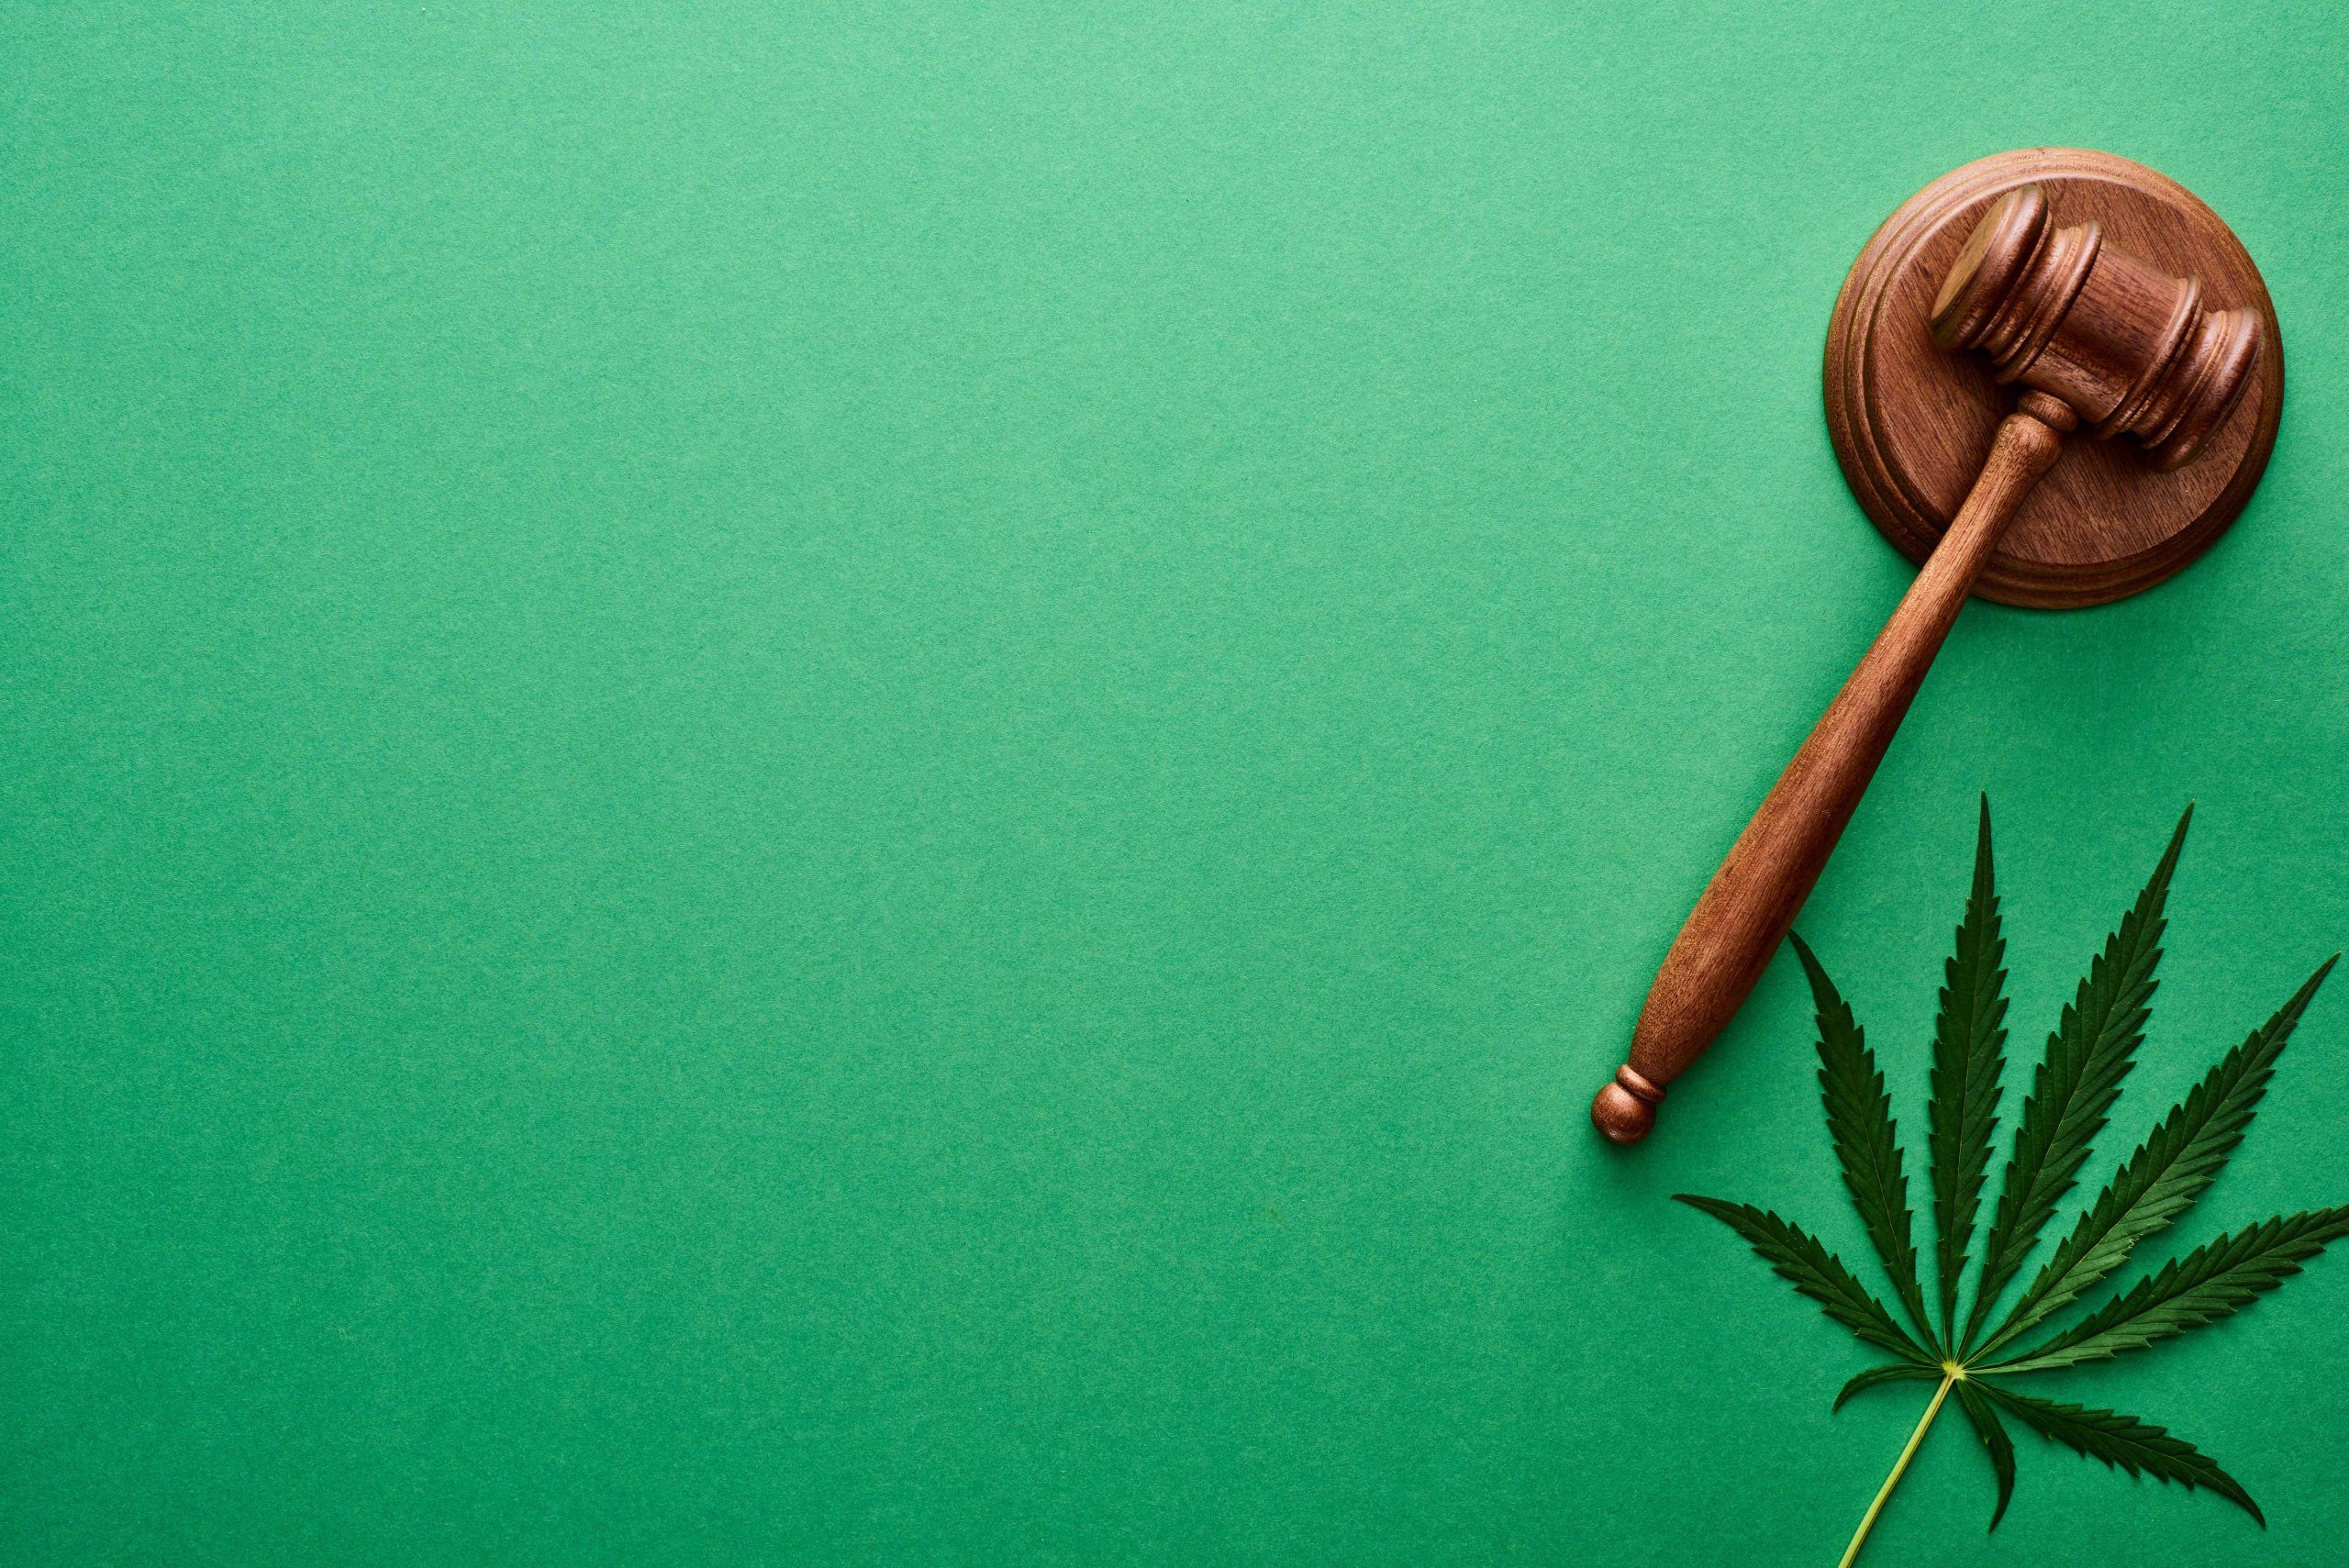 cannabis-court-laws-judge-disclaimer-page-image